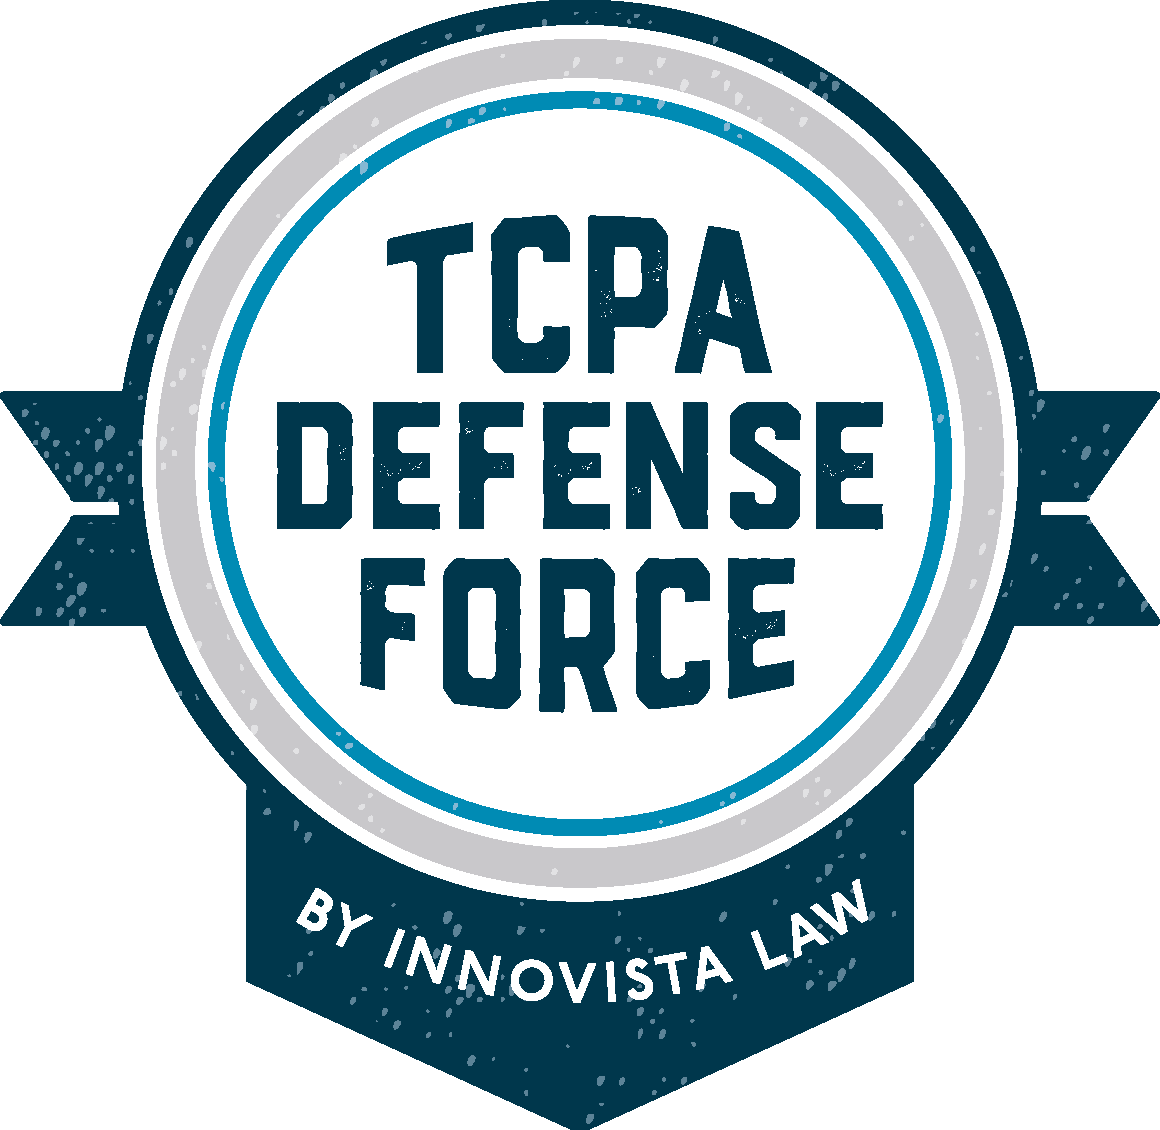 tcpa-defense-force-innovista-law-logo.png